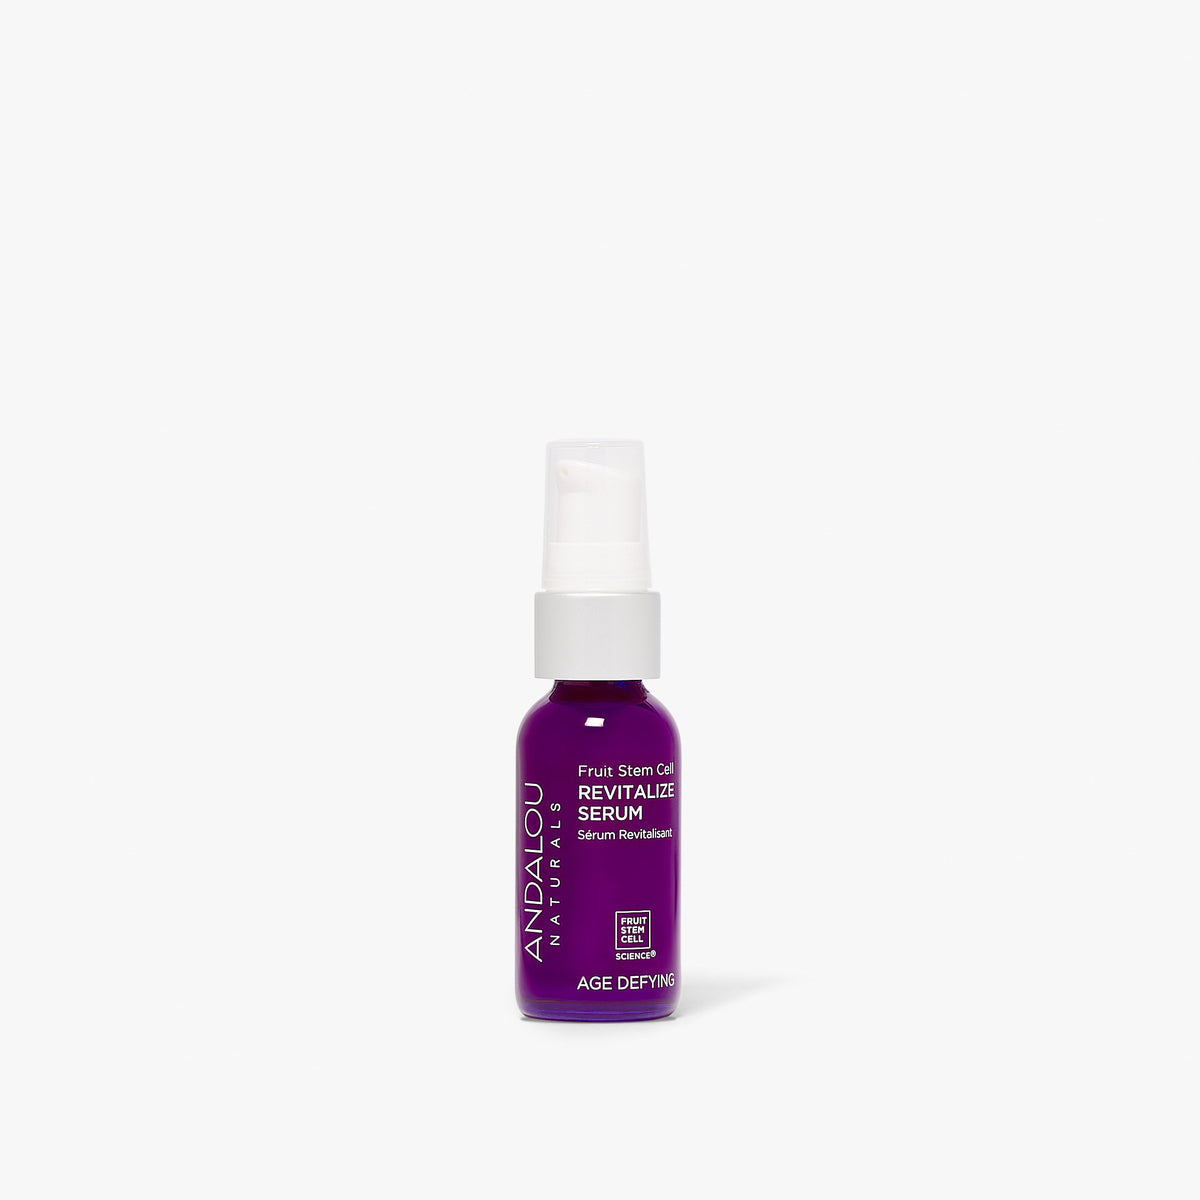 Age Defying Fruit Stem Cell Revitalize Serum - Andalou Naturals US